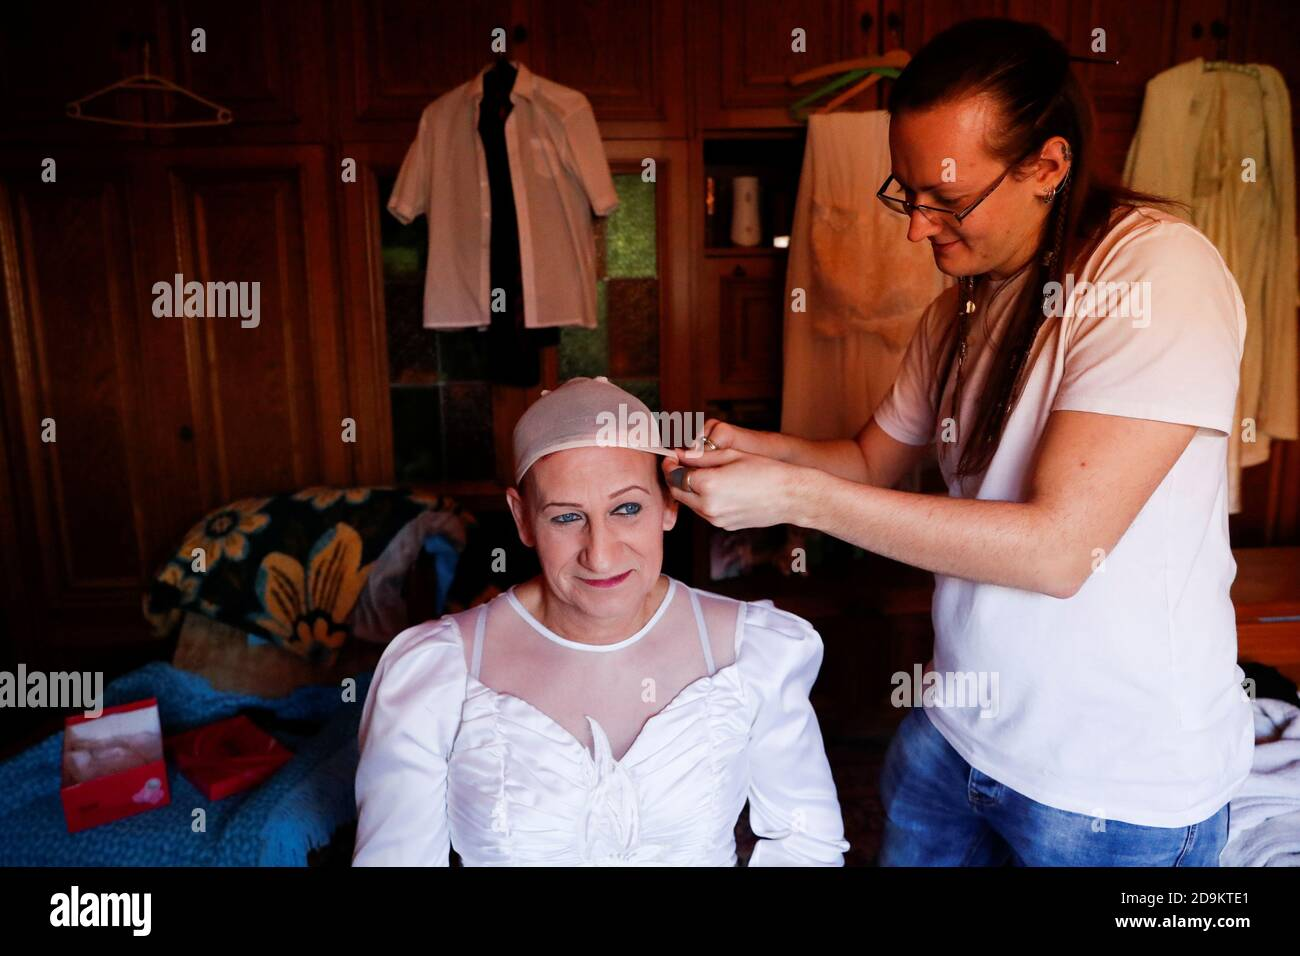 Transgender marrying woman a Can You